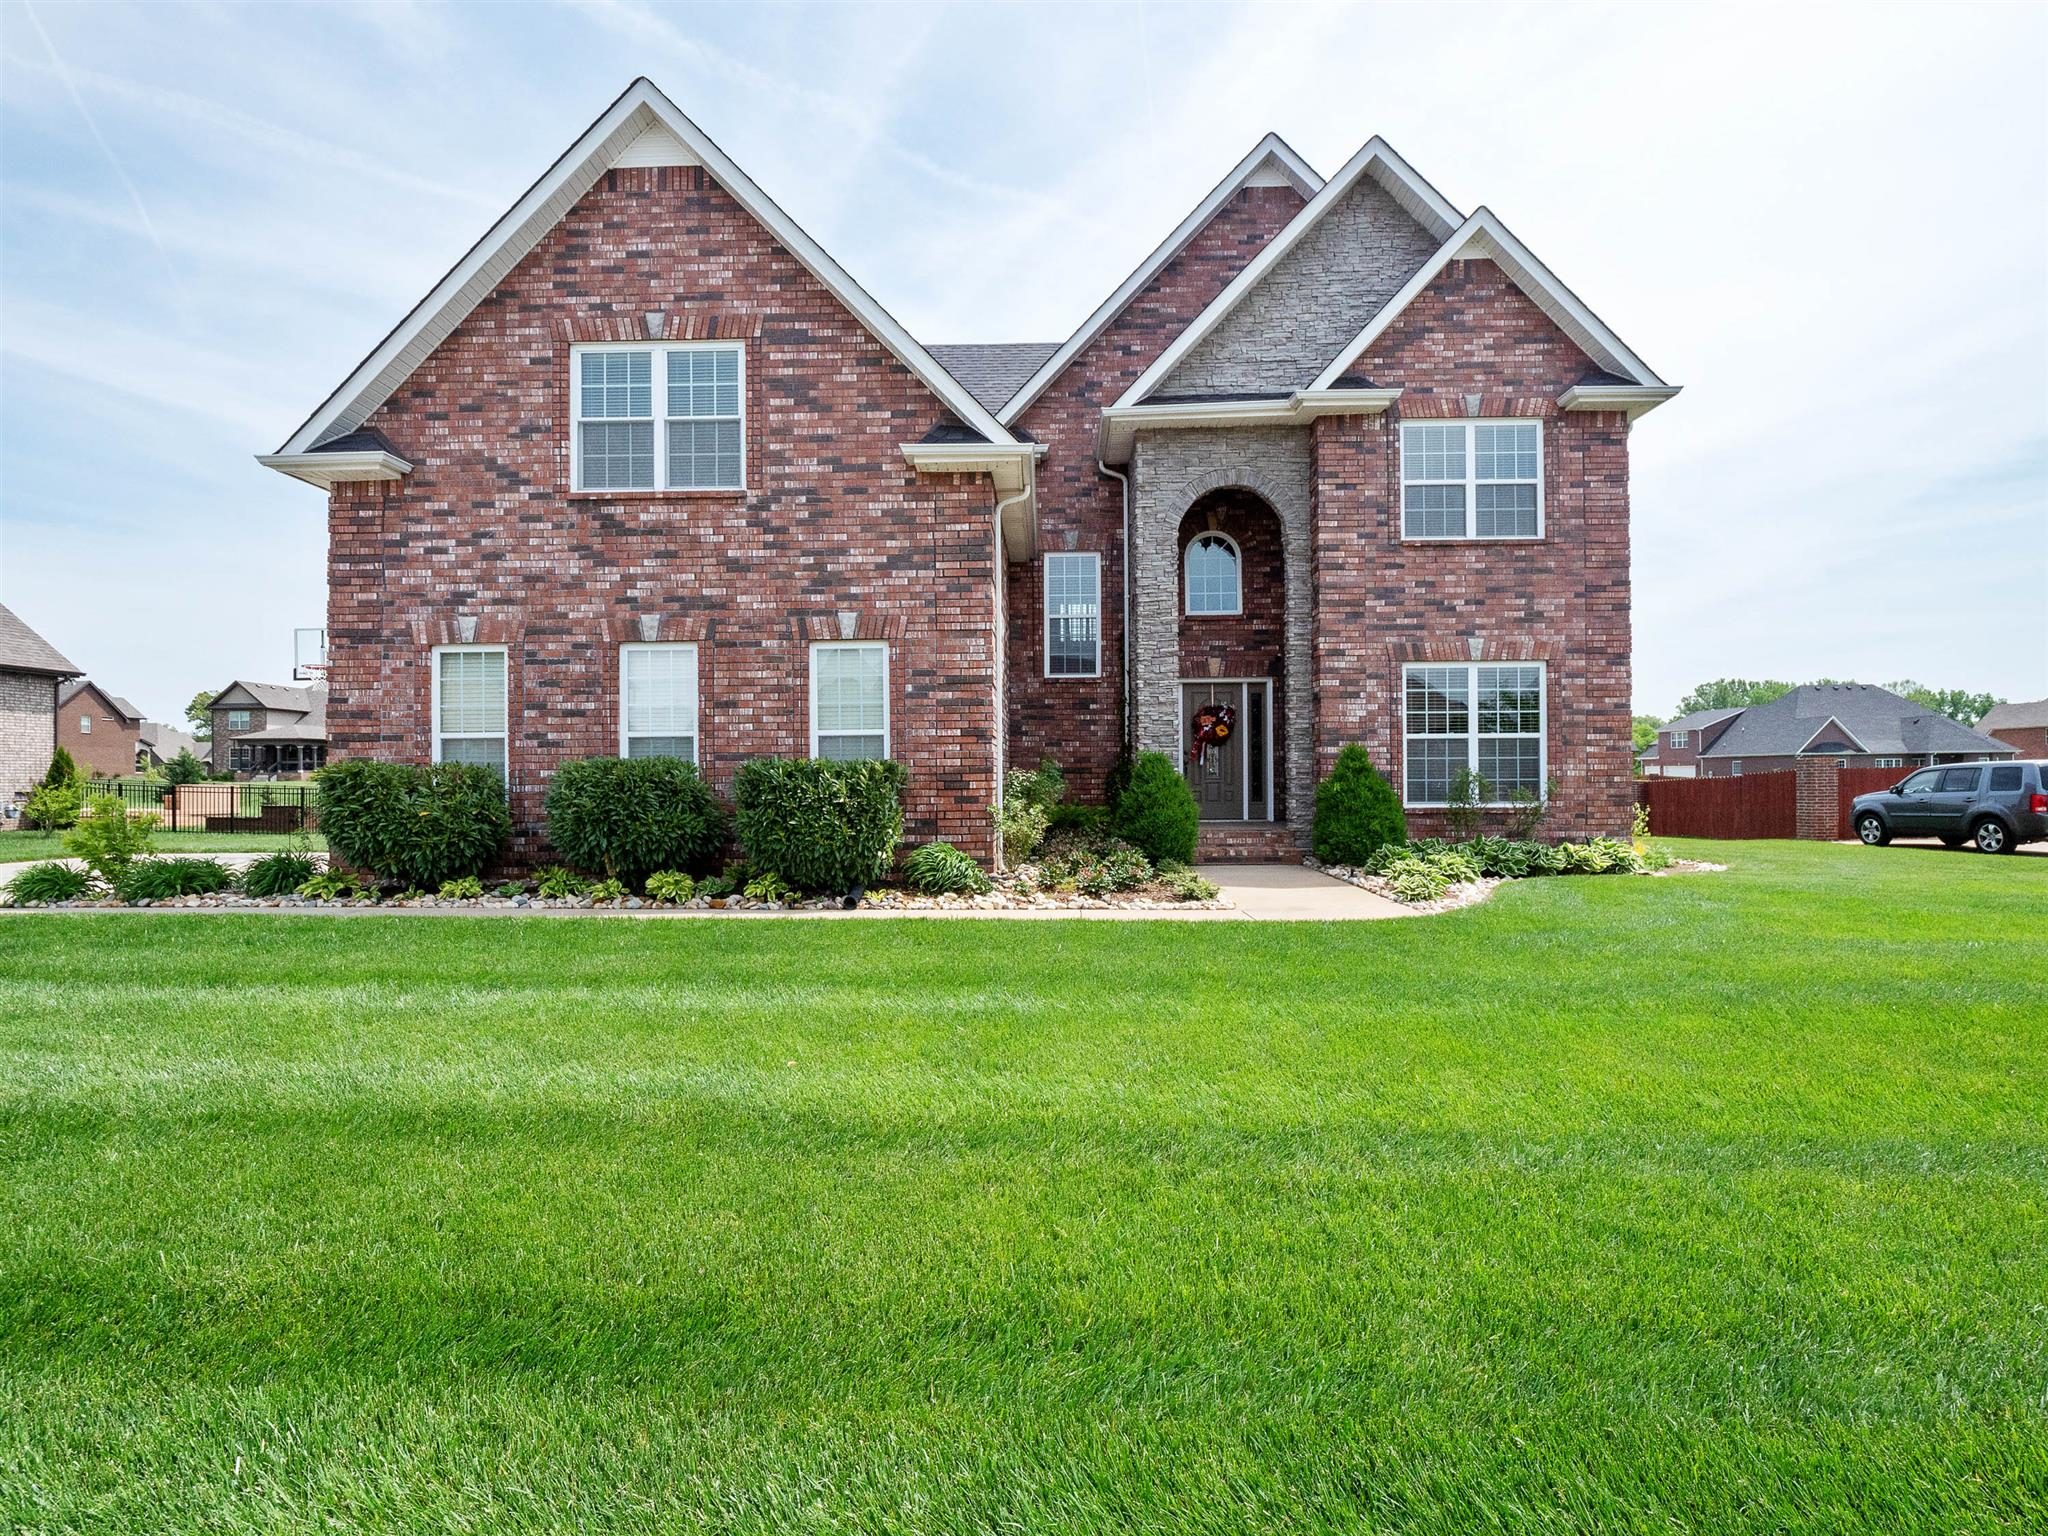 3133 Randle Brothers Ln, Clarksville, TN 37043 - Clarksville, TN real estate listing